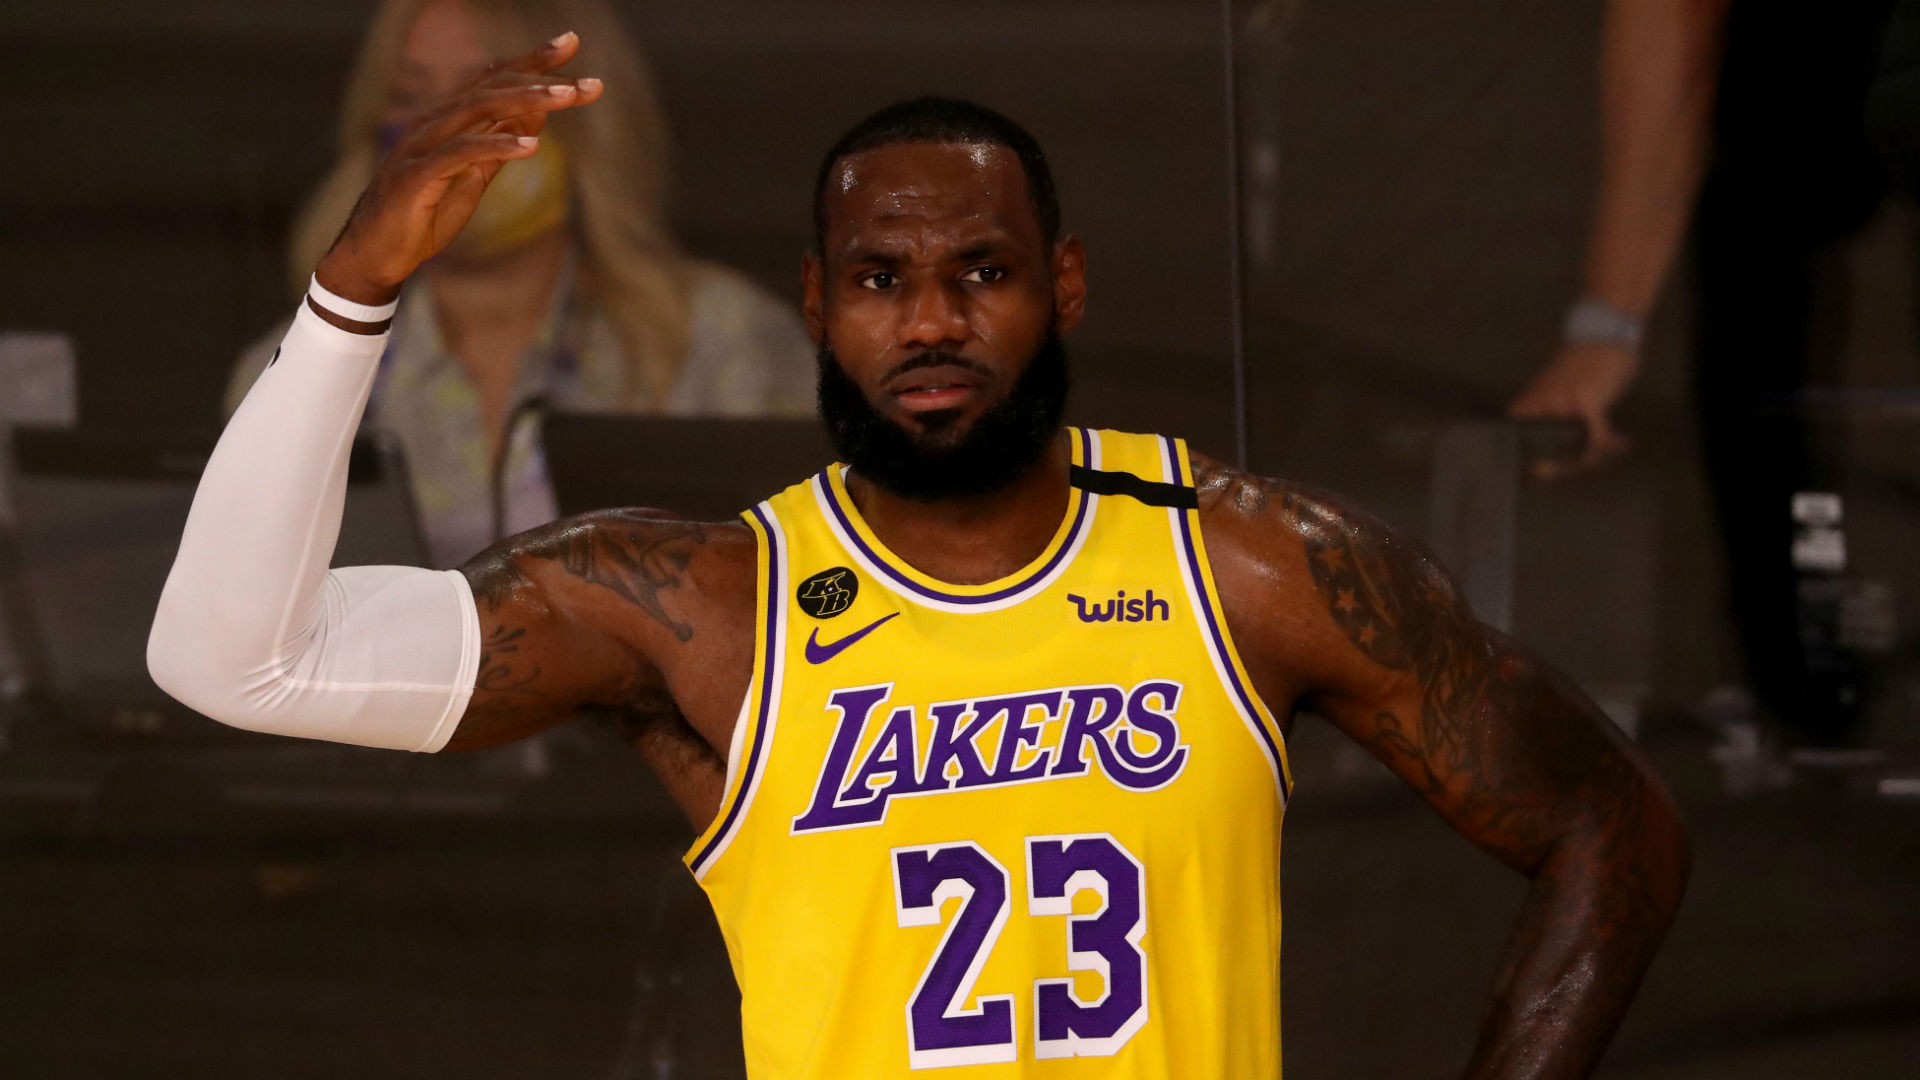 NBA playoff bracket predictions, picks, odds & series breakdowns for the 2020 bubble 3